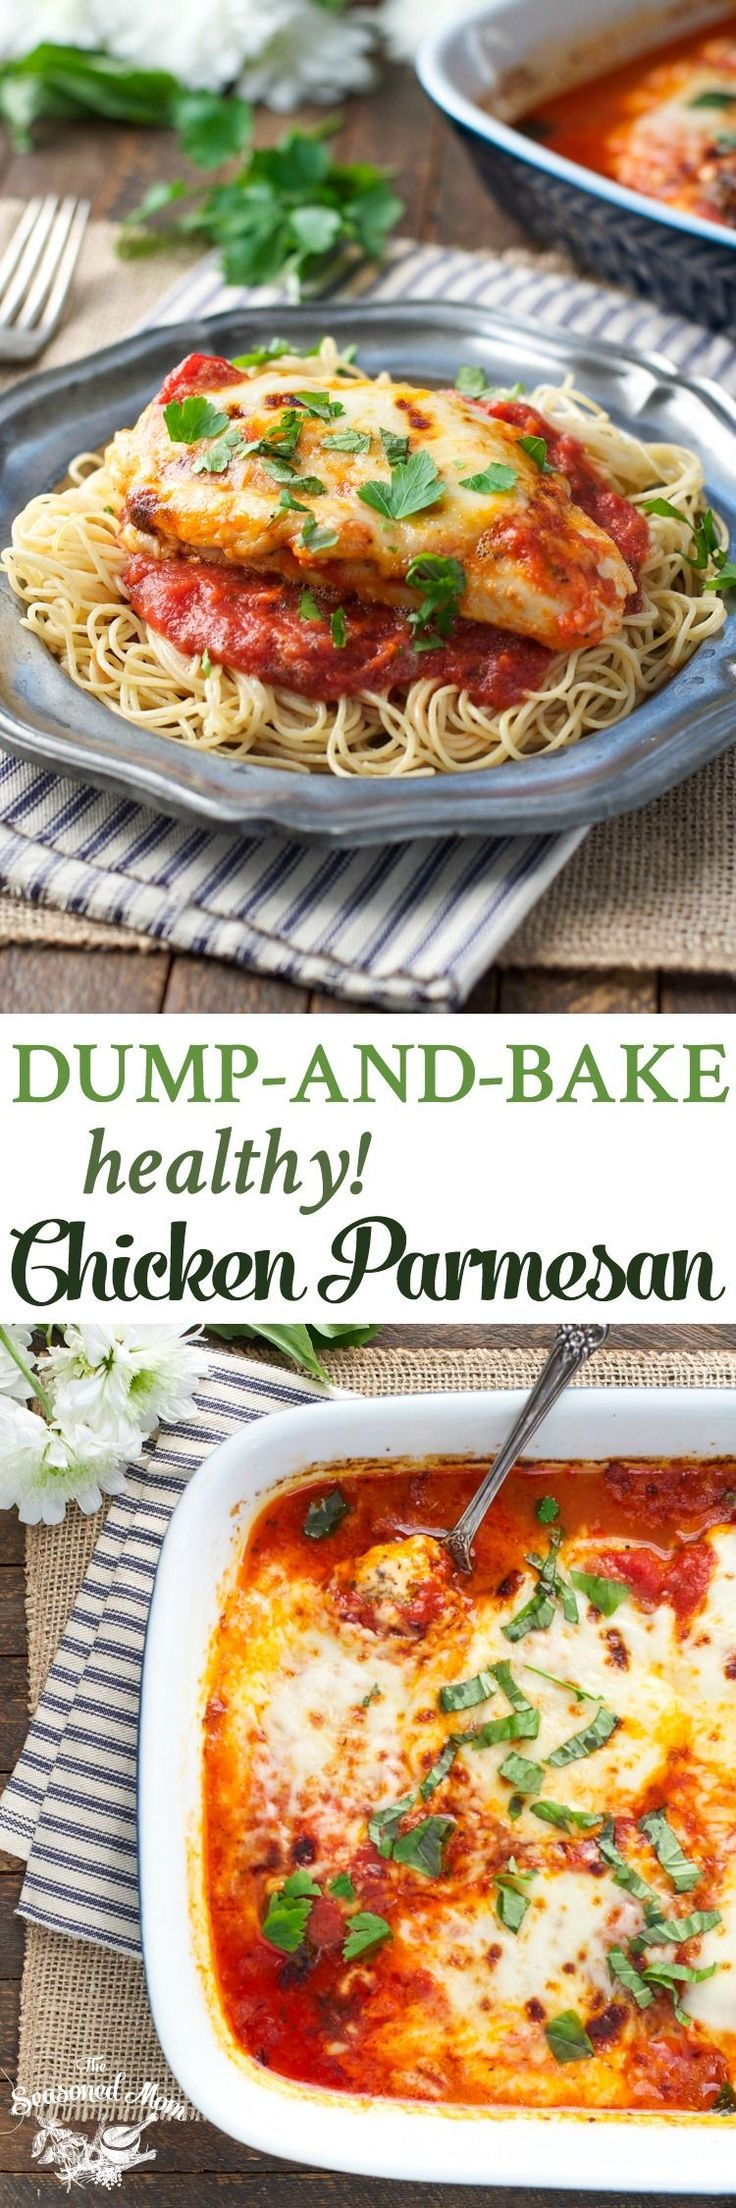 No prep work necessary for this Dump-and-Bake Healthy Chicken Parmesan! Dinner Ideas | Easy Dinner Recipes Healthy | Chicken Recipes | Chicken Breast Recipes | Gluten Free